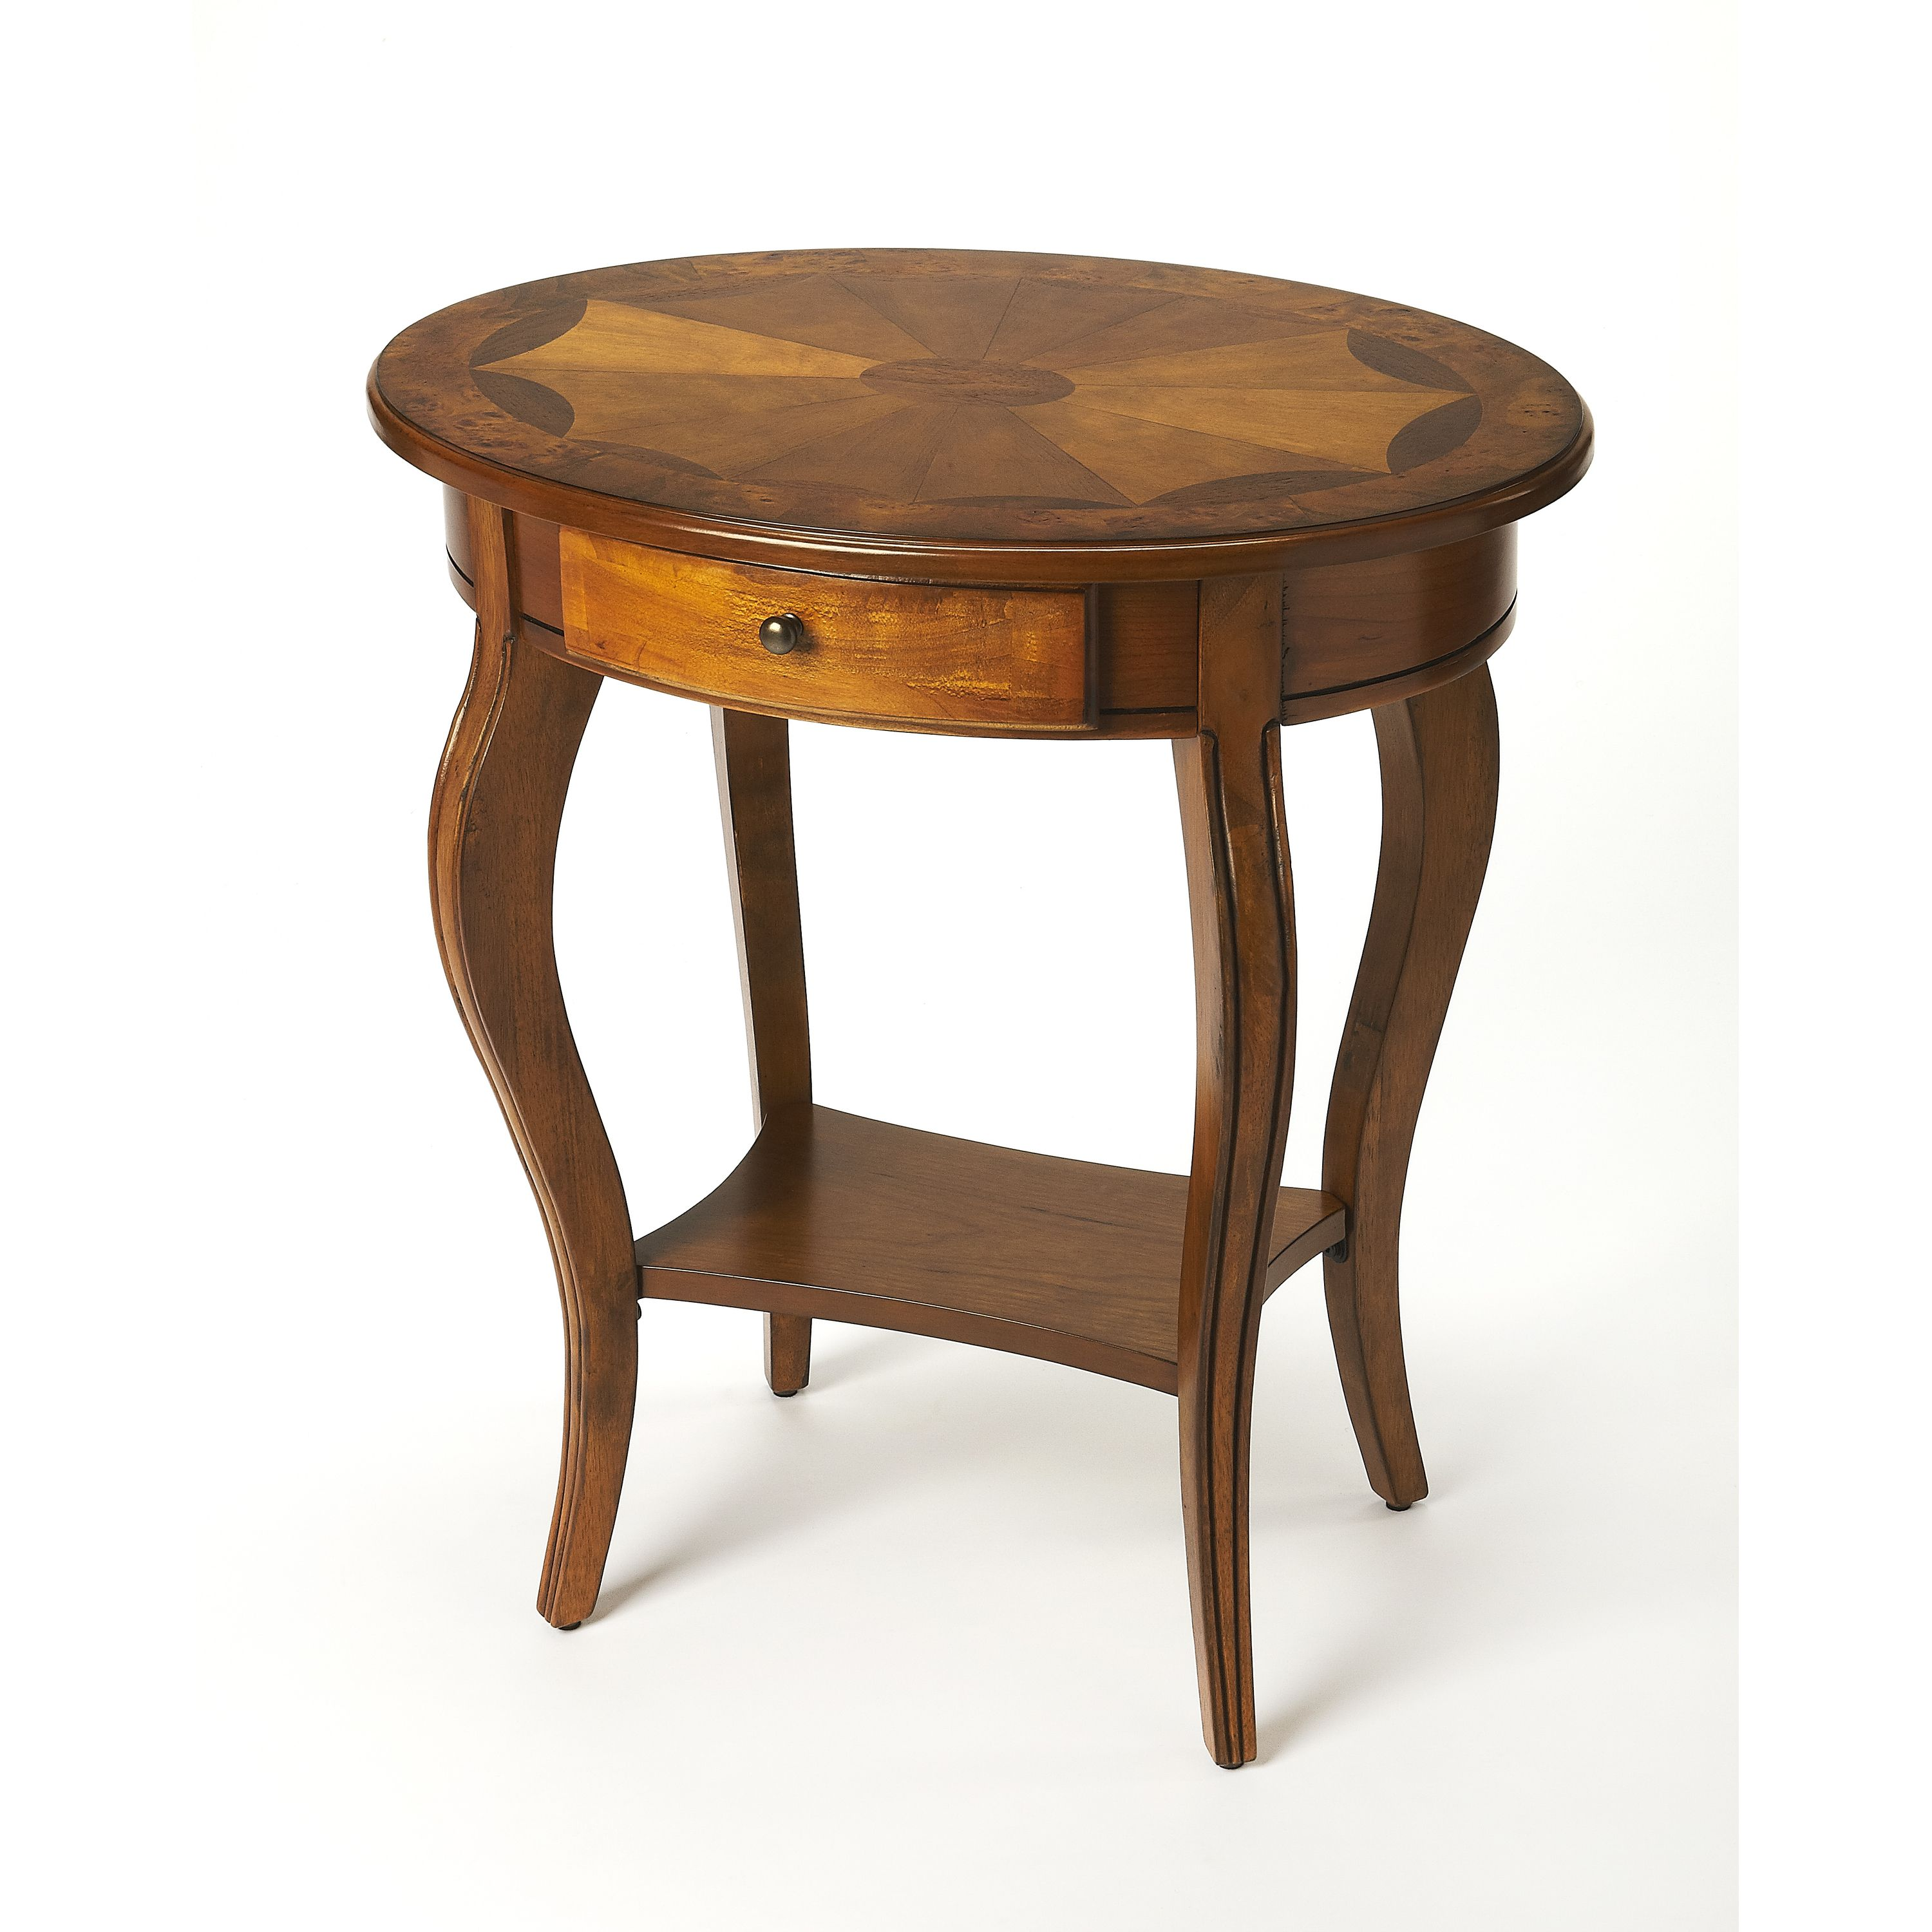 Butler Jeanette Olive Ash Burl Oval Accent Table